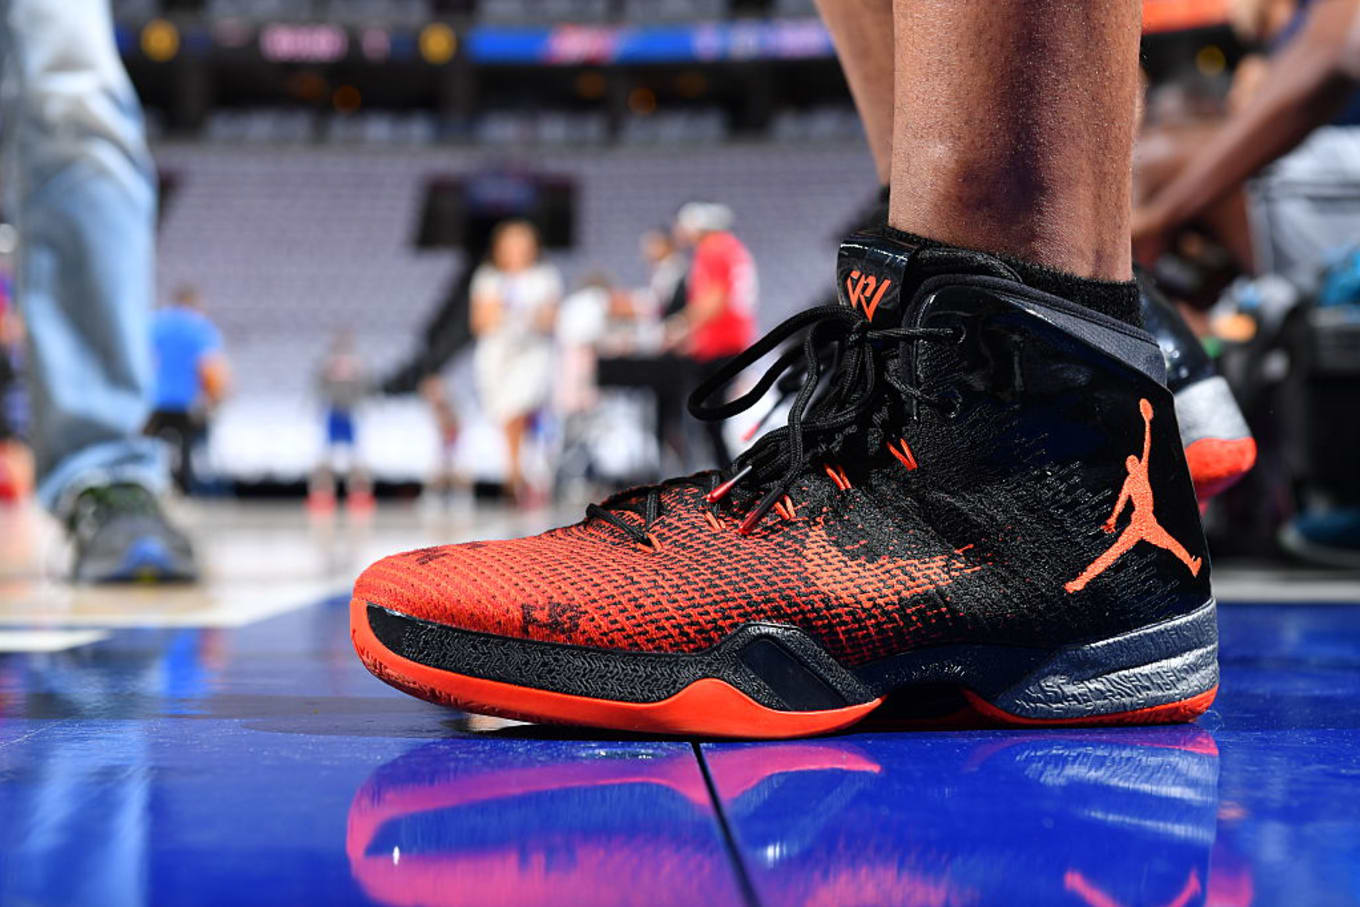 4b69392646d Russell Westbrook Wears Modified Black/Orange Air Jordan 31 PE ...